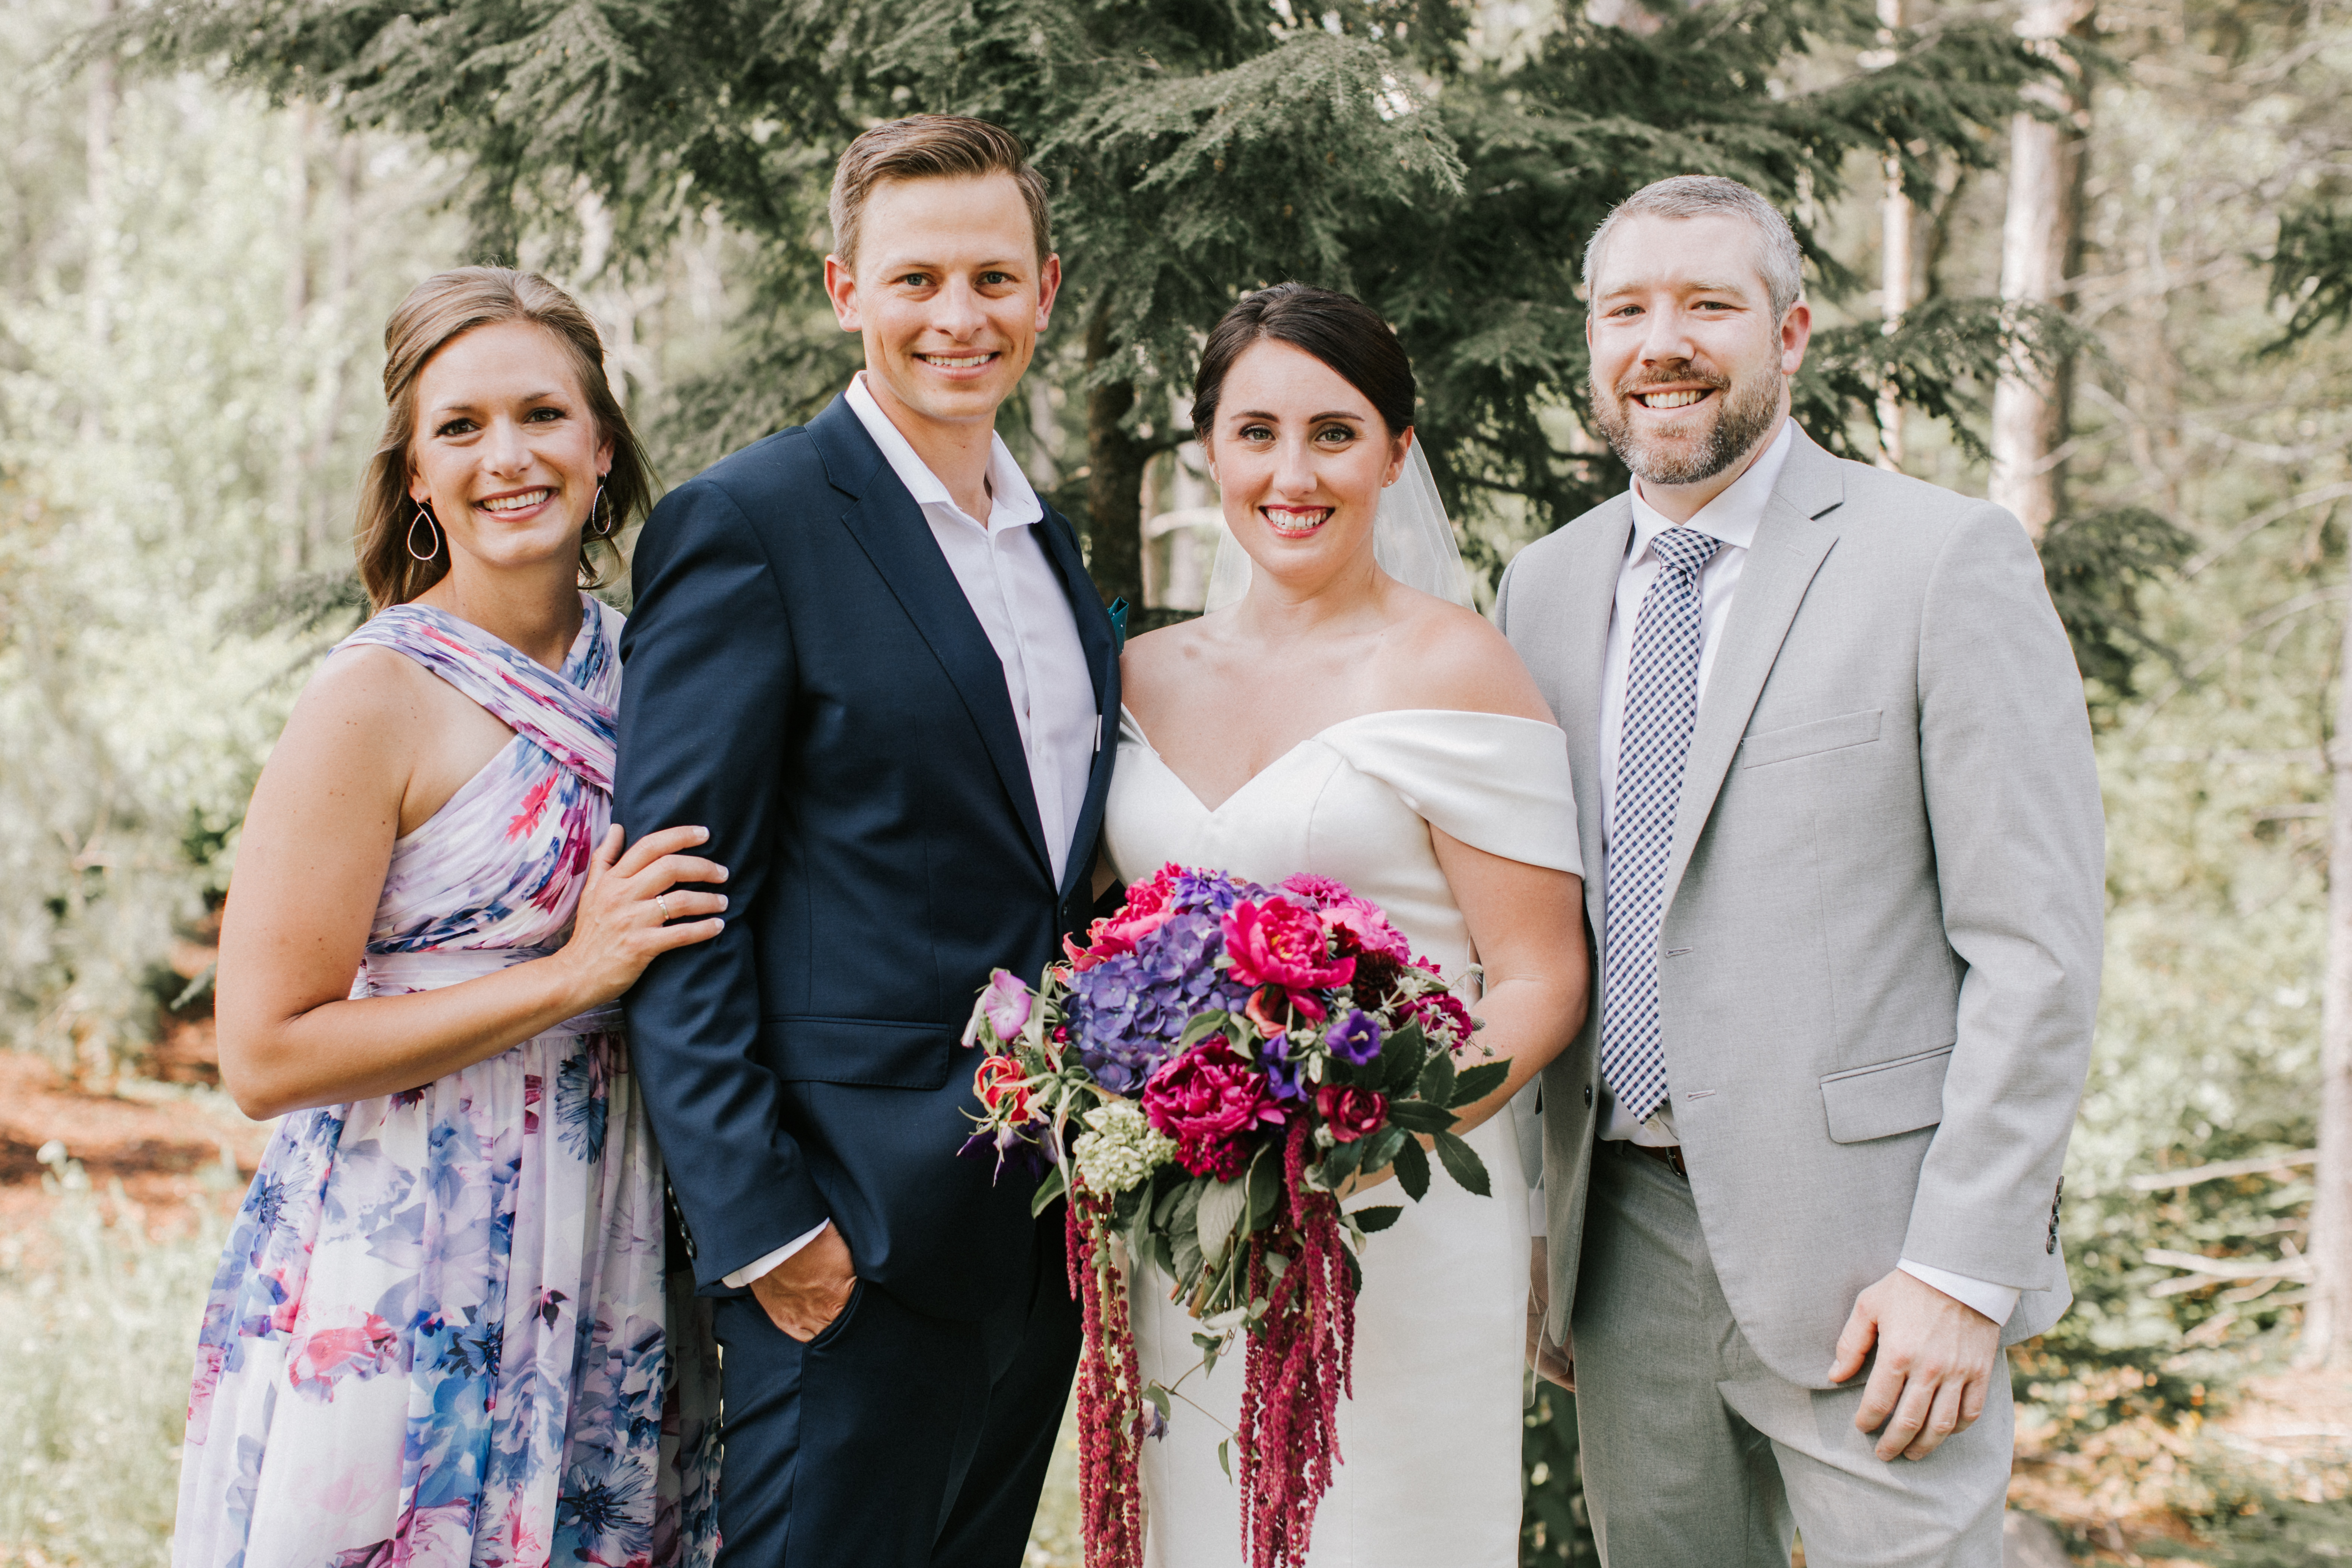 Portrait photography at Hidden Pond wedding in Kennebunkport, Maine